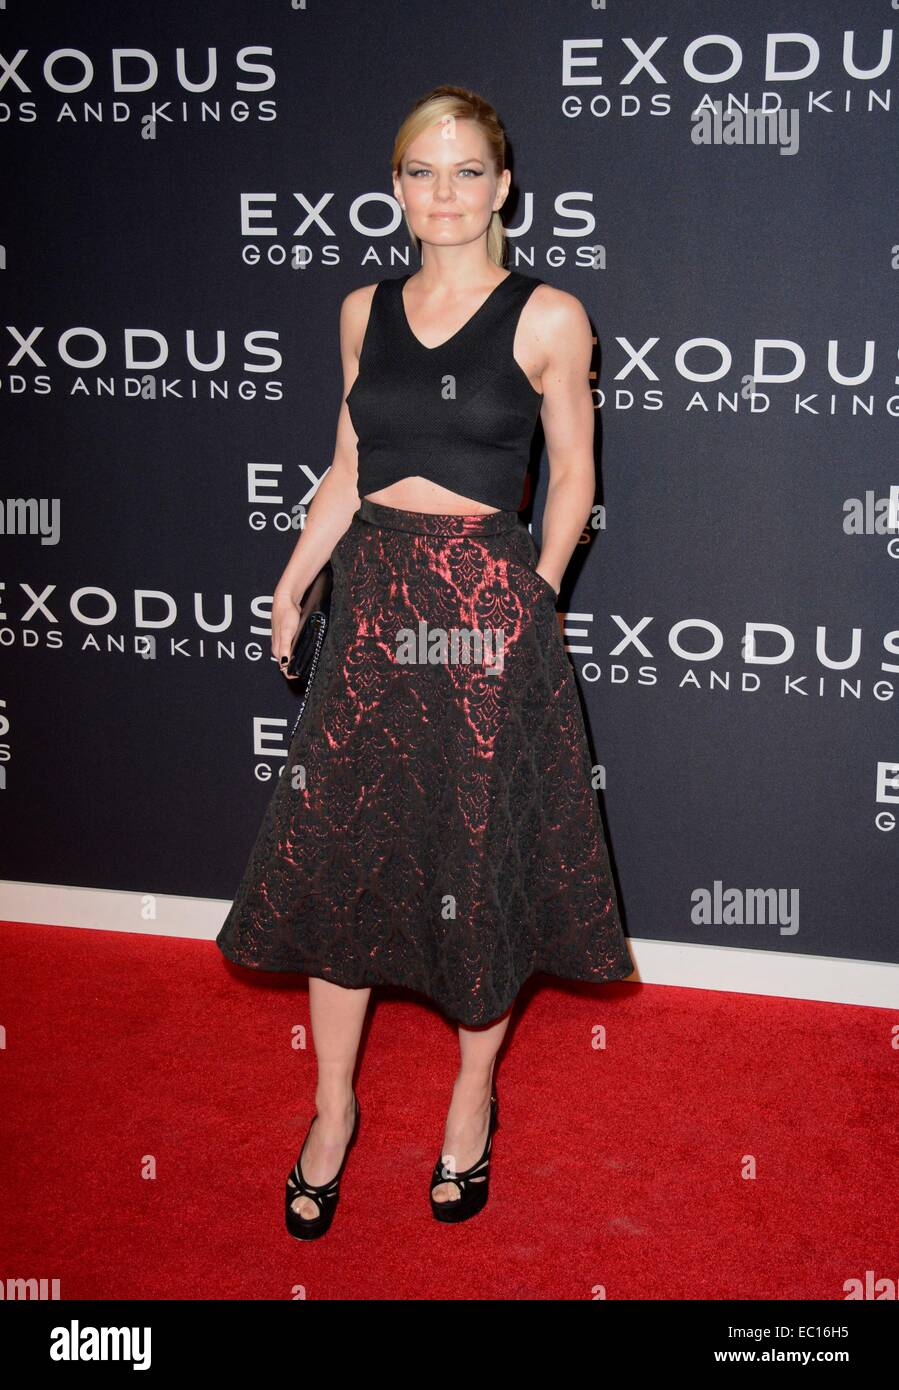 Brooklyn, NY, USA. 7th Dec, 2014. Jennifer Morrison at arrivals for EXODUS: GODS AND KINGS Premiere, The Brooklyn - Stock Image